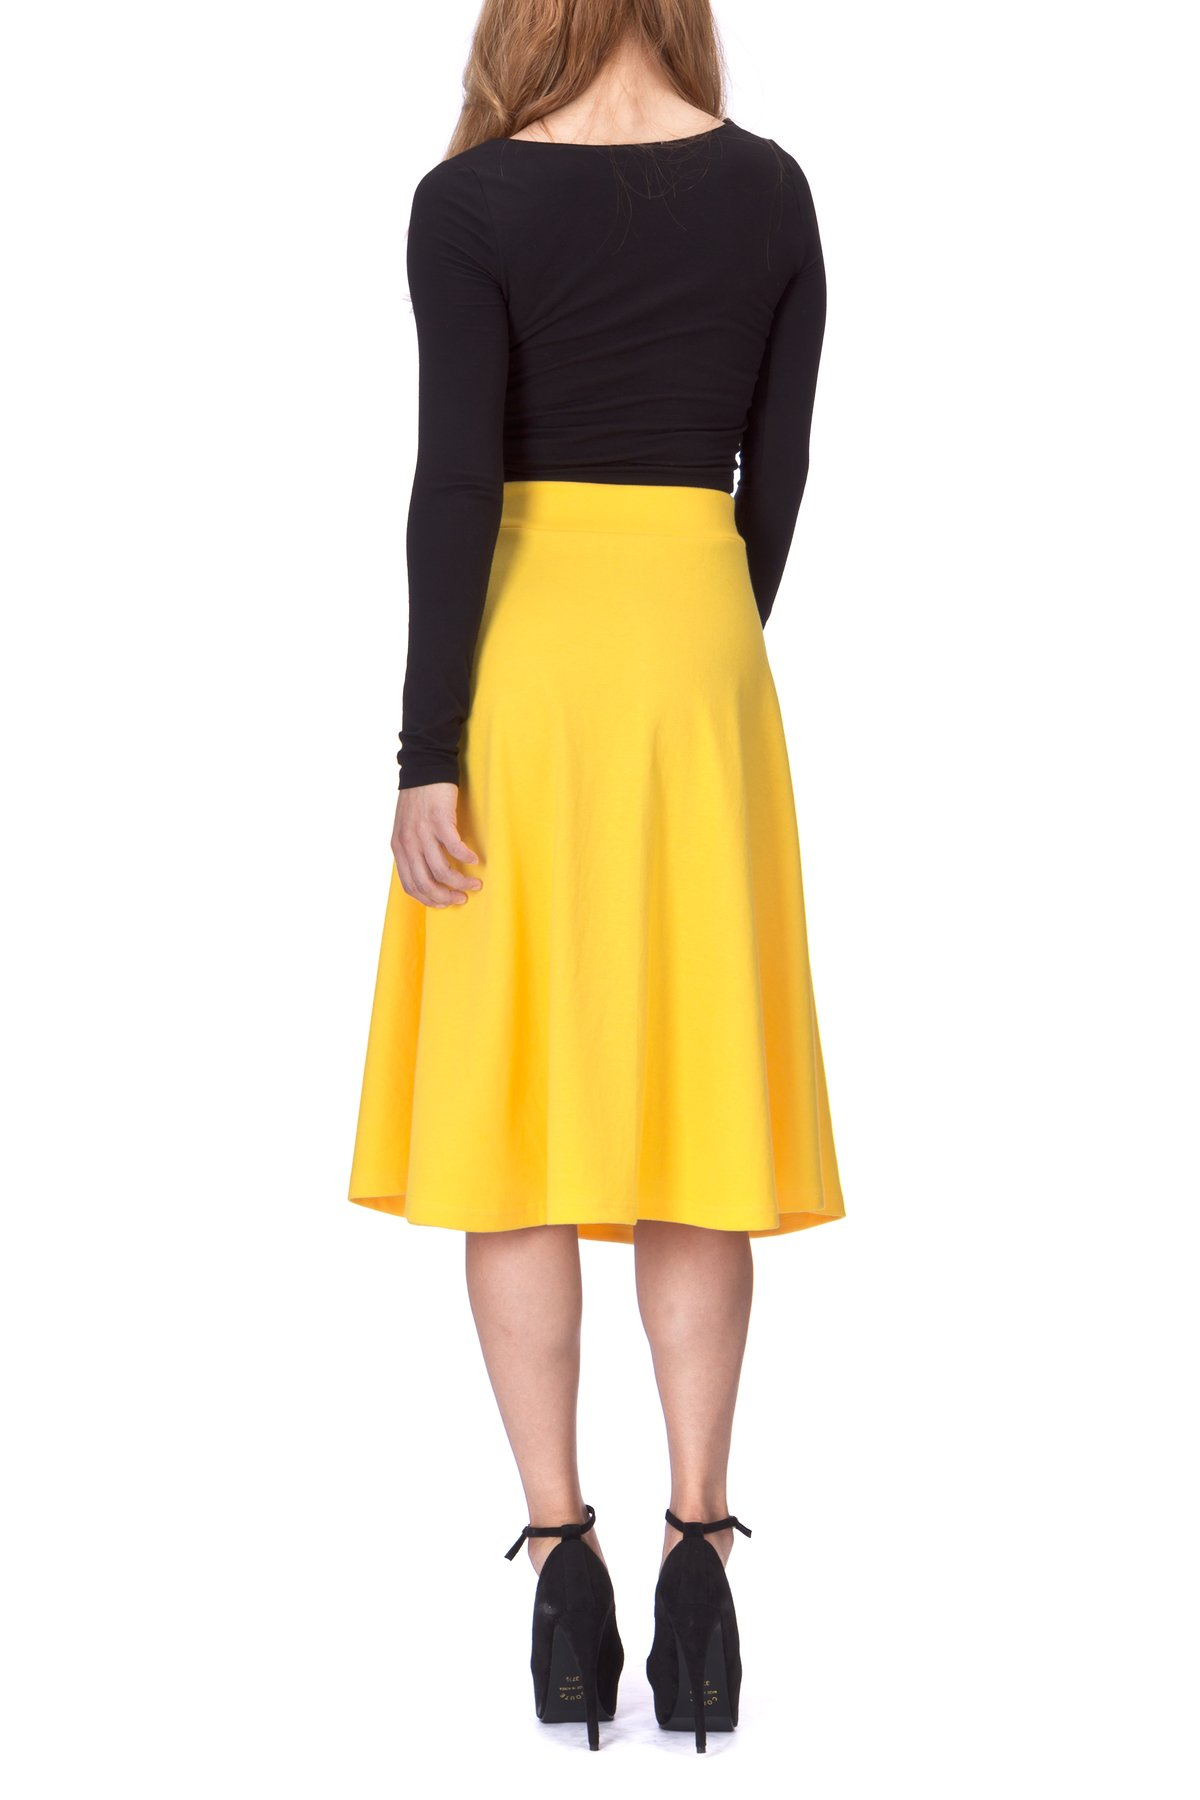 Everyday High Waist A Line Flared Skater Midi Skirt Yellow 03